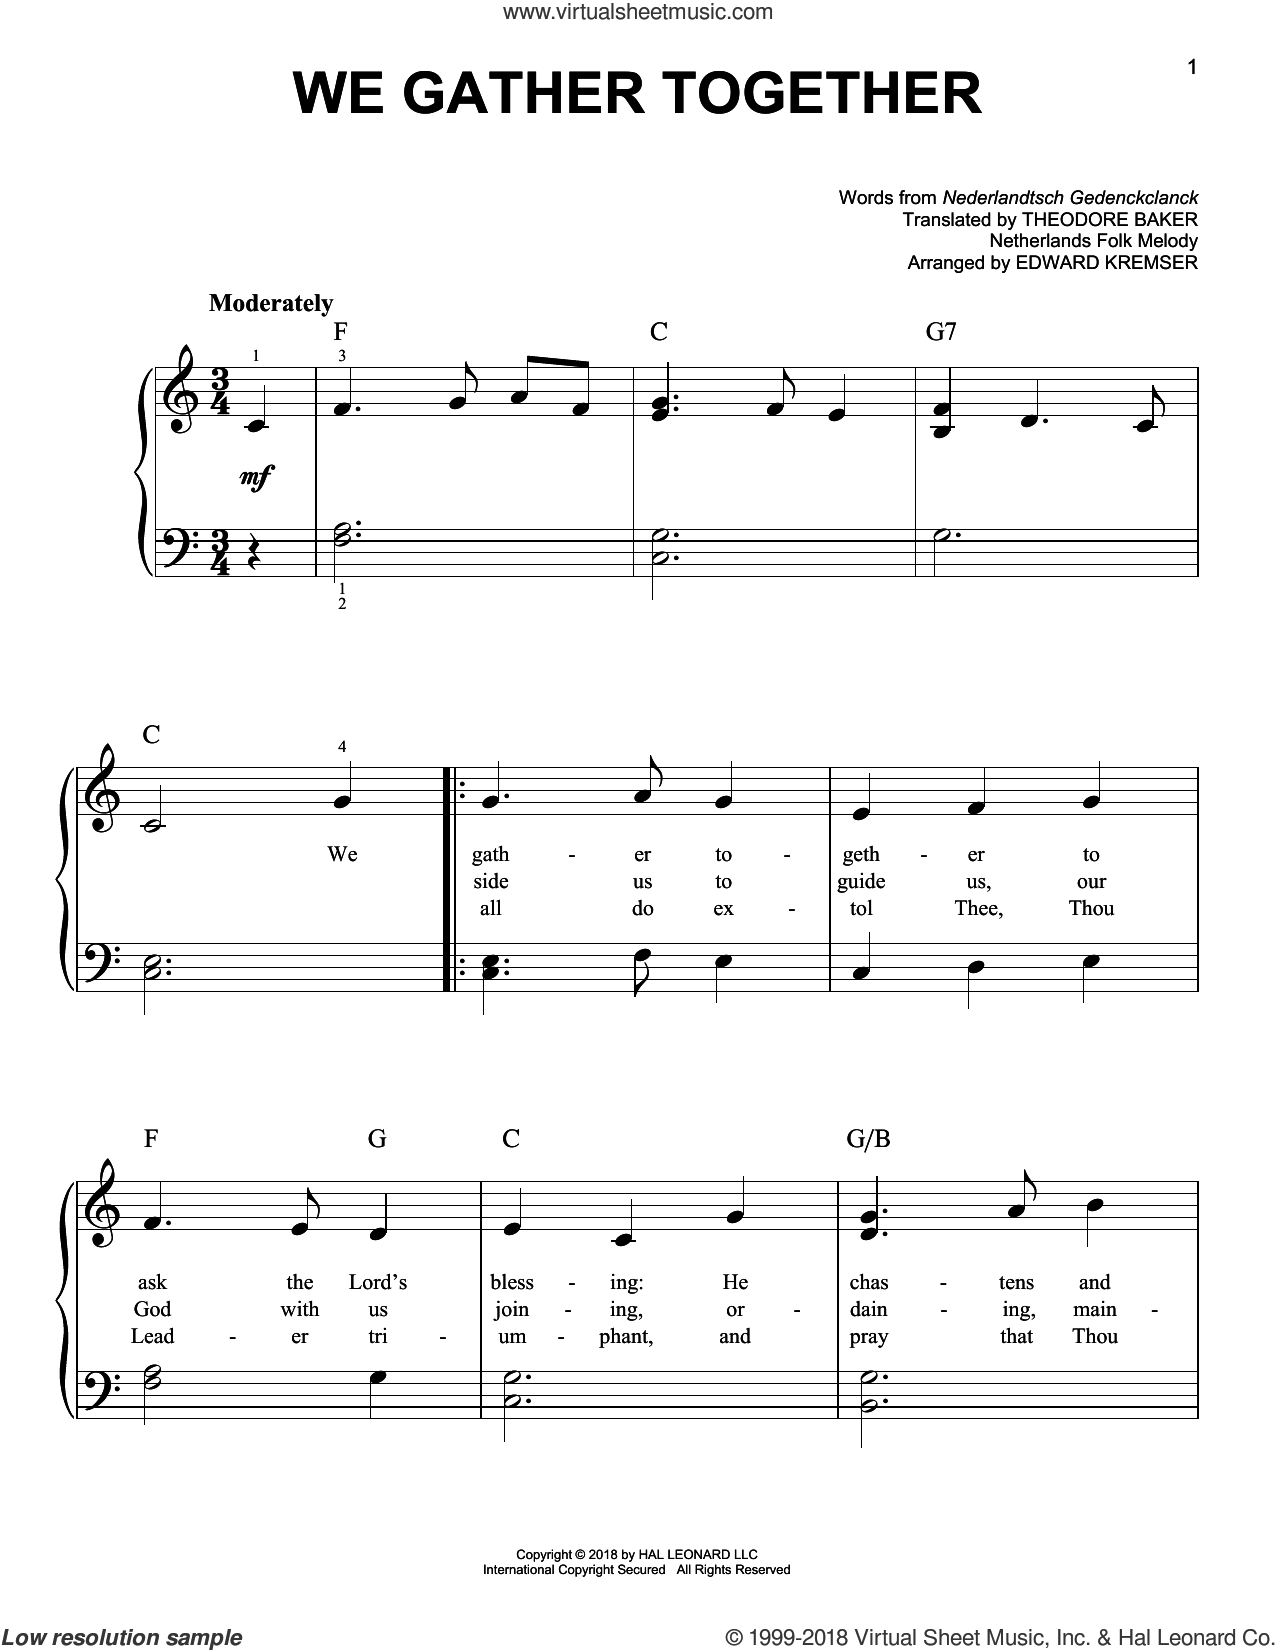 We Gather Together sheet music for piano solo by Theodore Baker, Eduard Kremser and Nederlandtsch Gedenckclanck, easy skill level